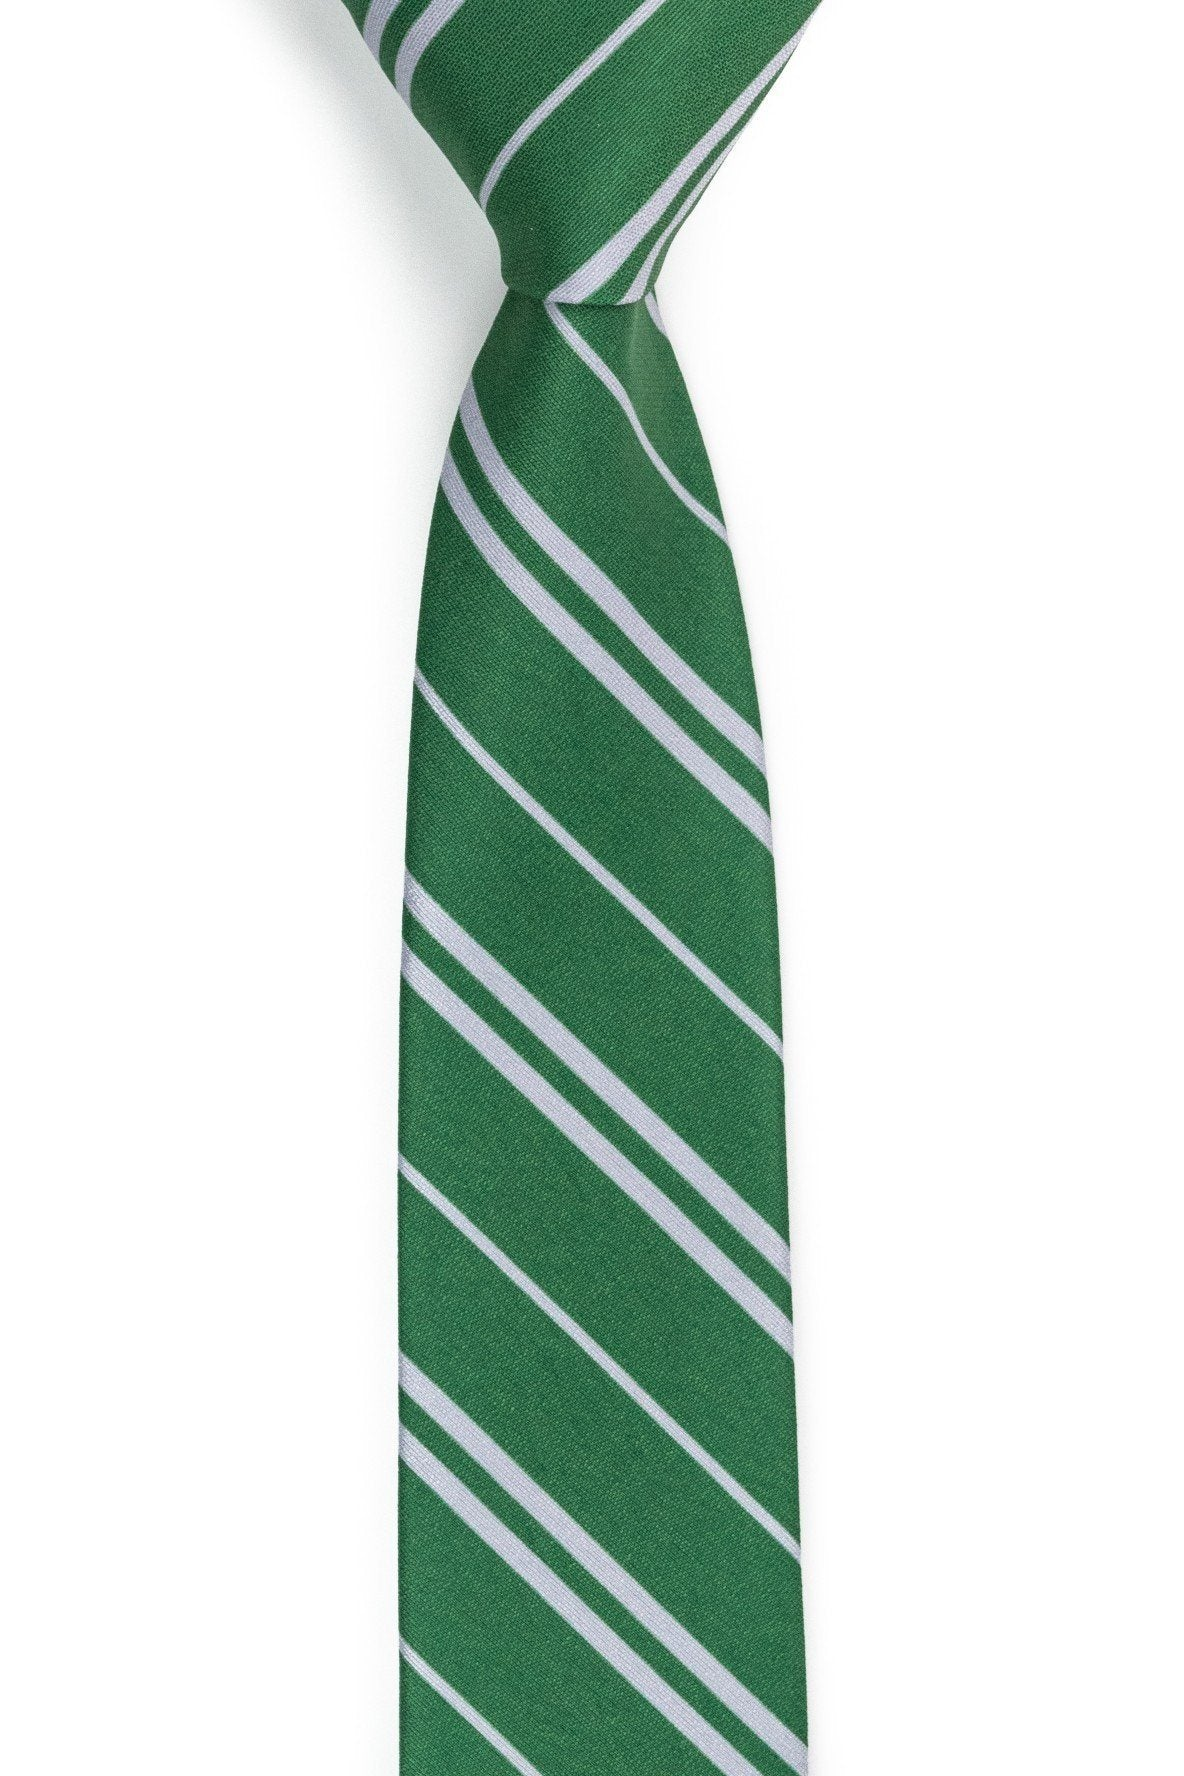 Slyther's Inn - Green Striped Tie